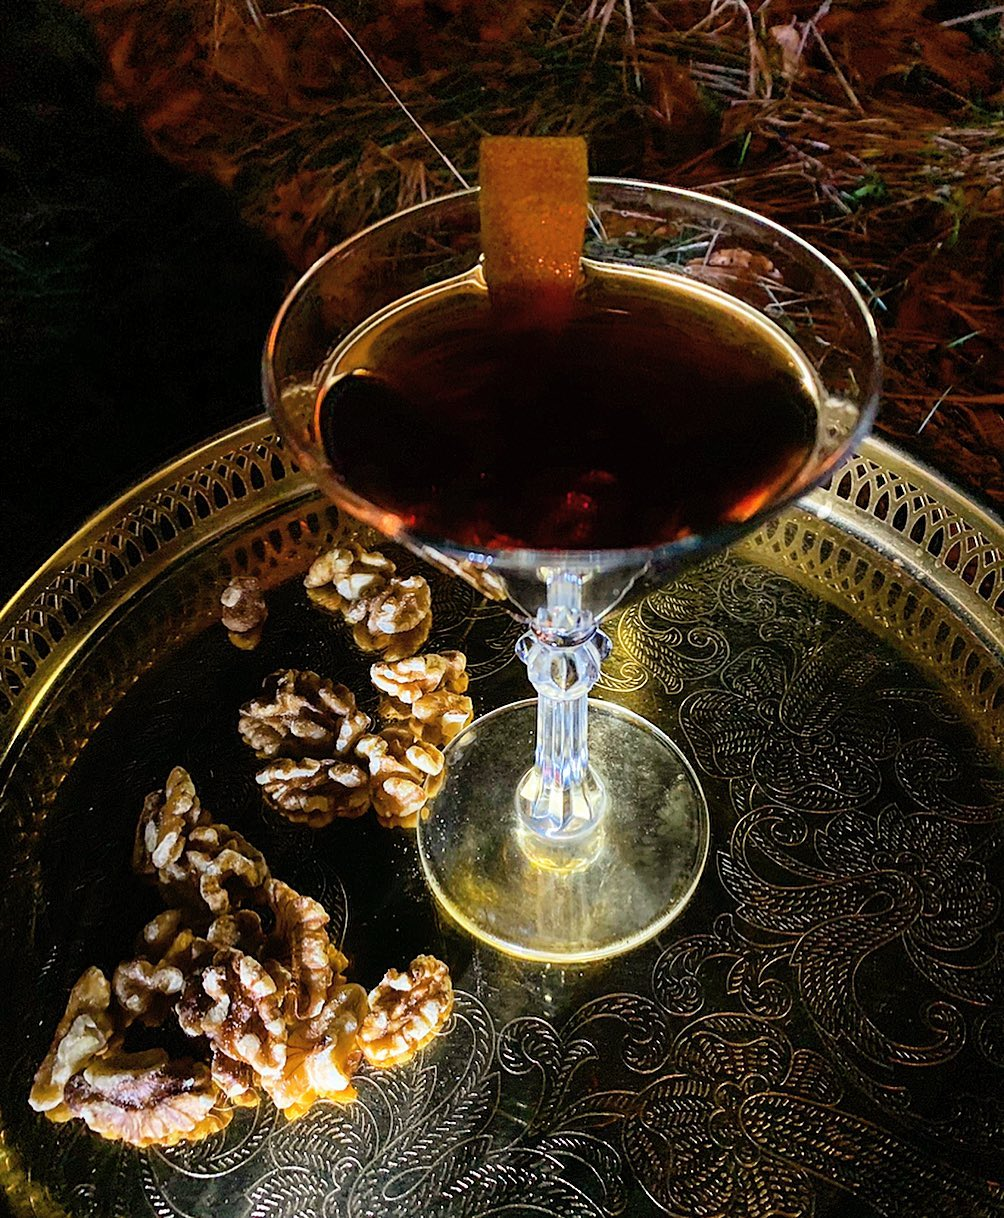 Veckans Cocktail:Santas Nuts -Bourbon, Noix Saint Jean Aperitif, Liquore Chinatto, Black Walnut Bitters #cocktail#cocktails